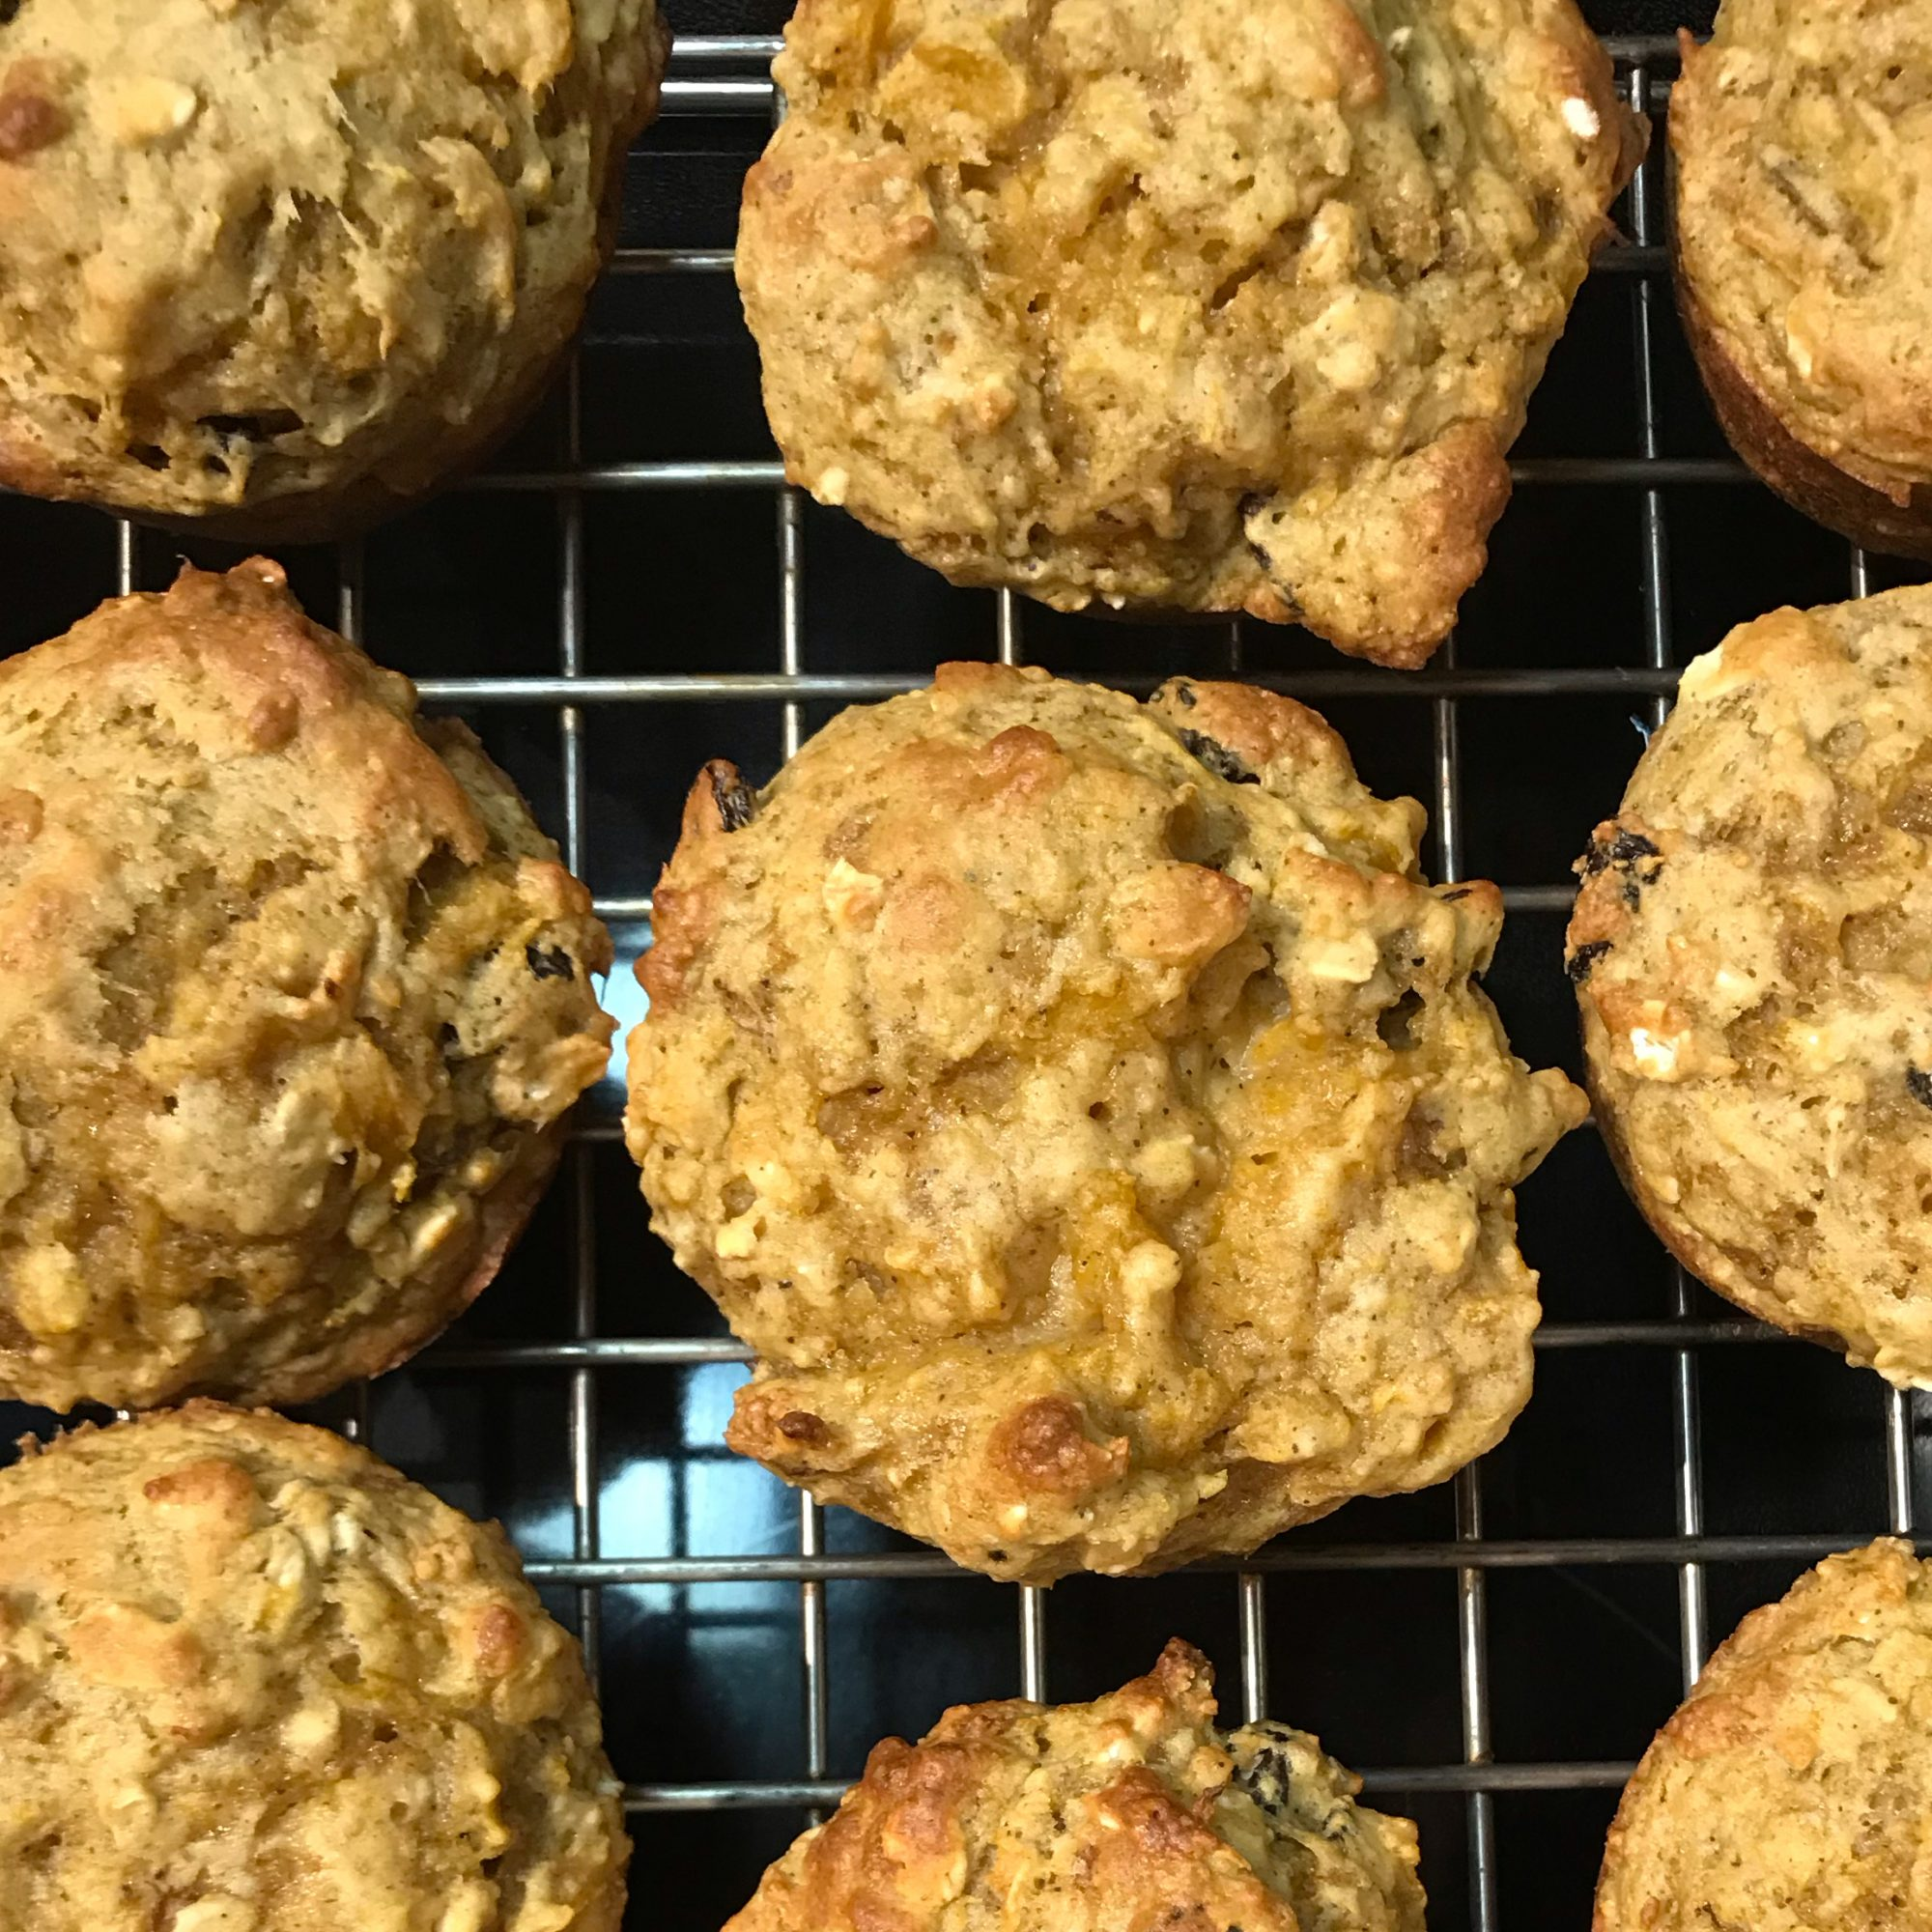 One can of pumpkin and a few pantry staples are all you need for these fluffy, moist pumpkin spice muffins. Don't be afraid to up the spices if you want something a bit bolder — this is one place that can't get enough pumpkin spice.